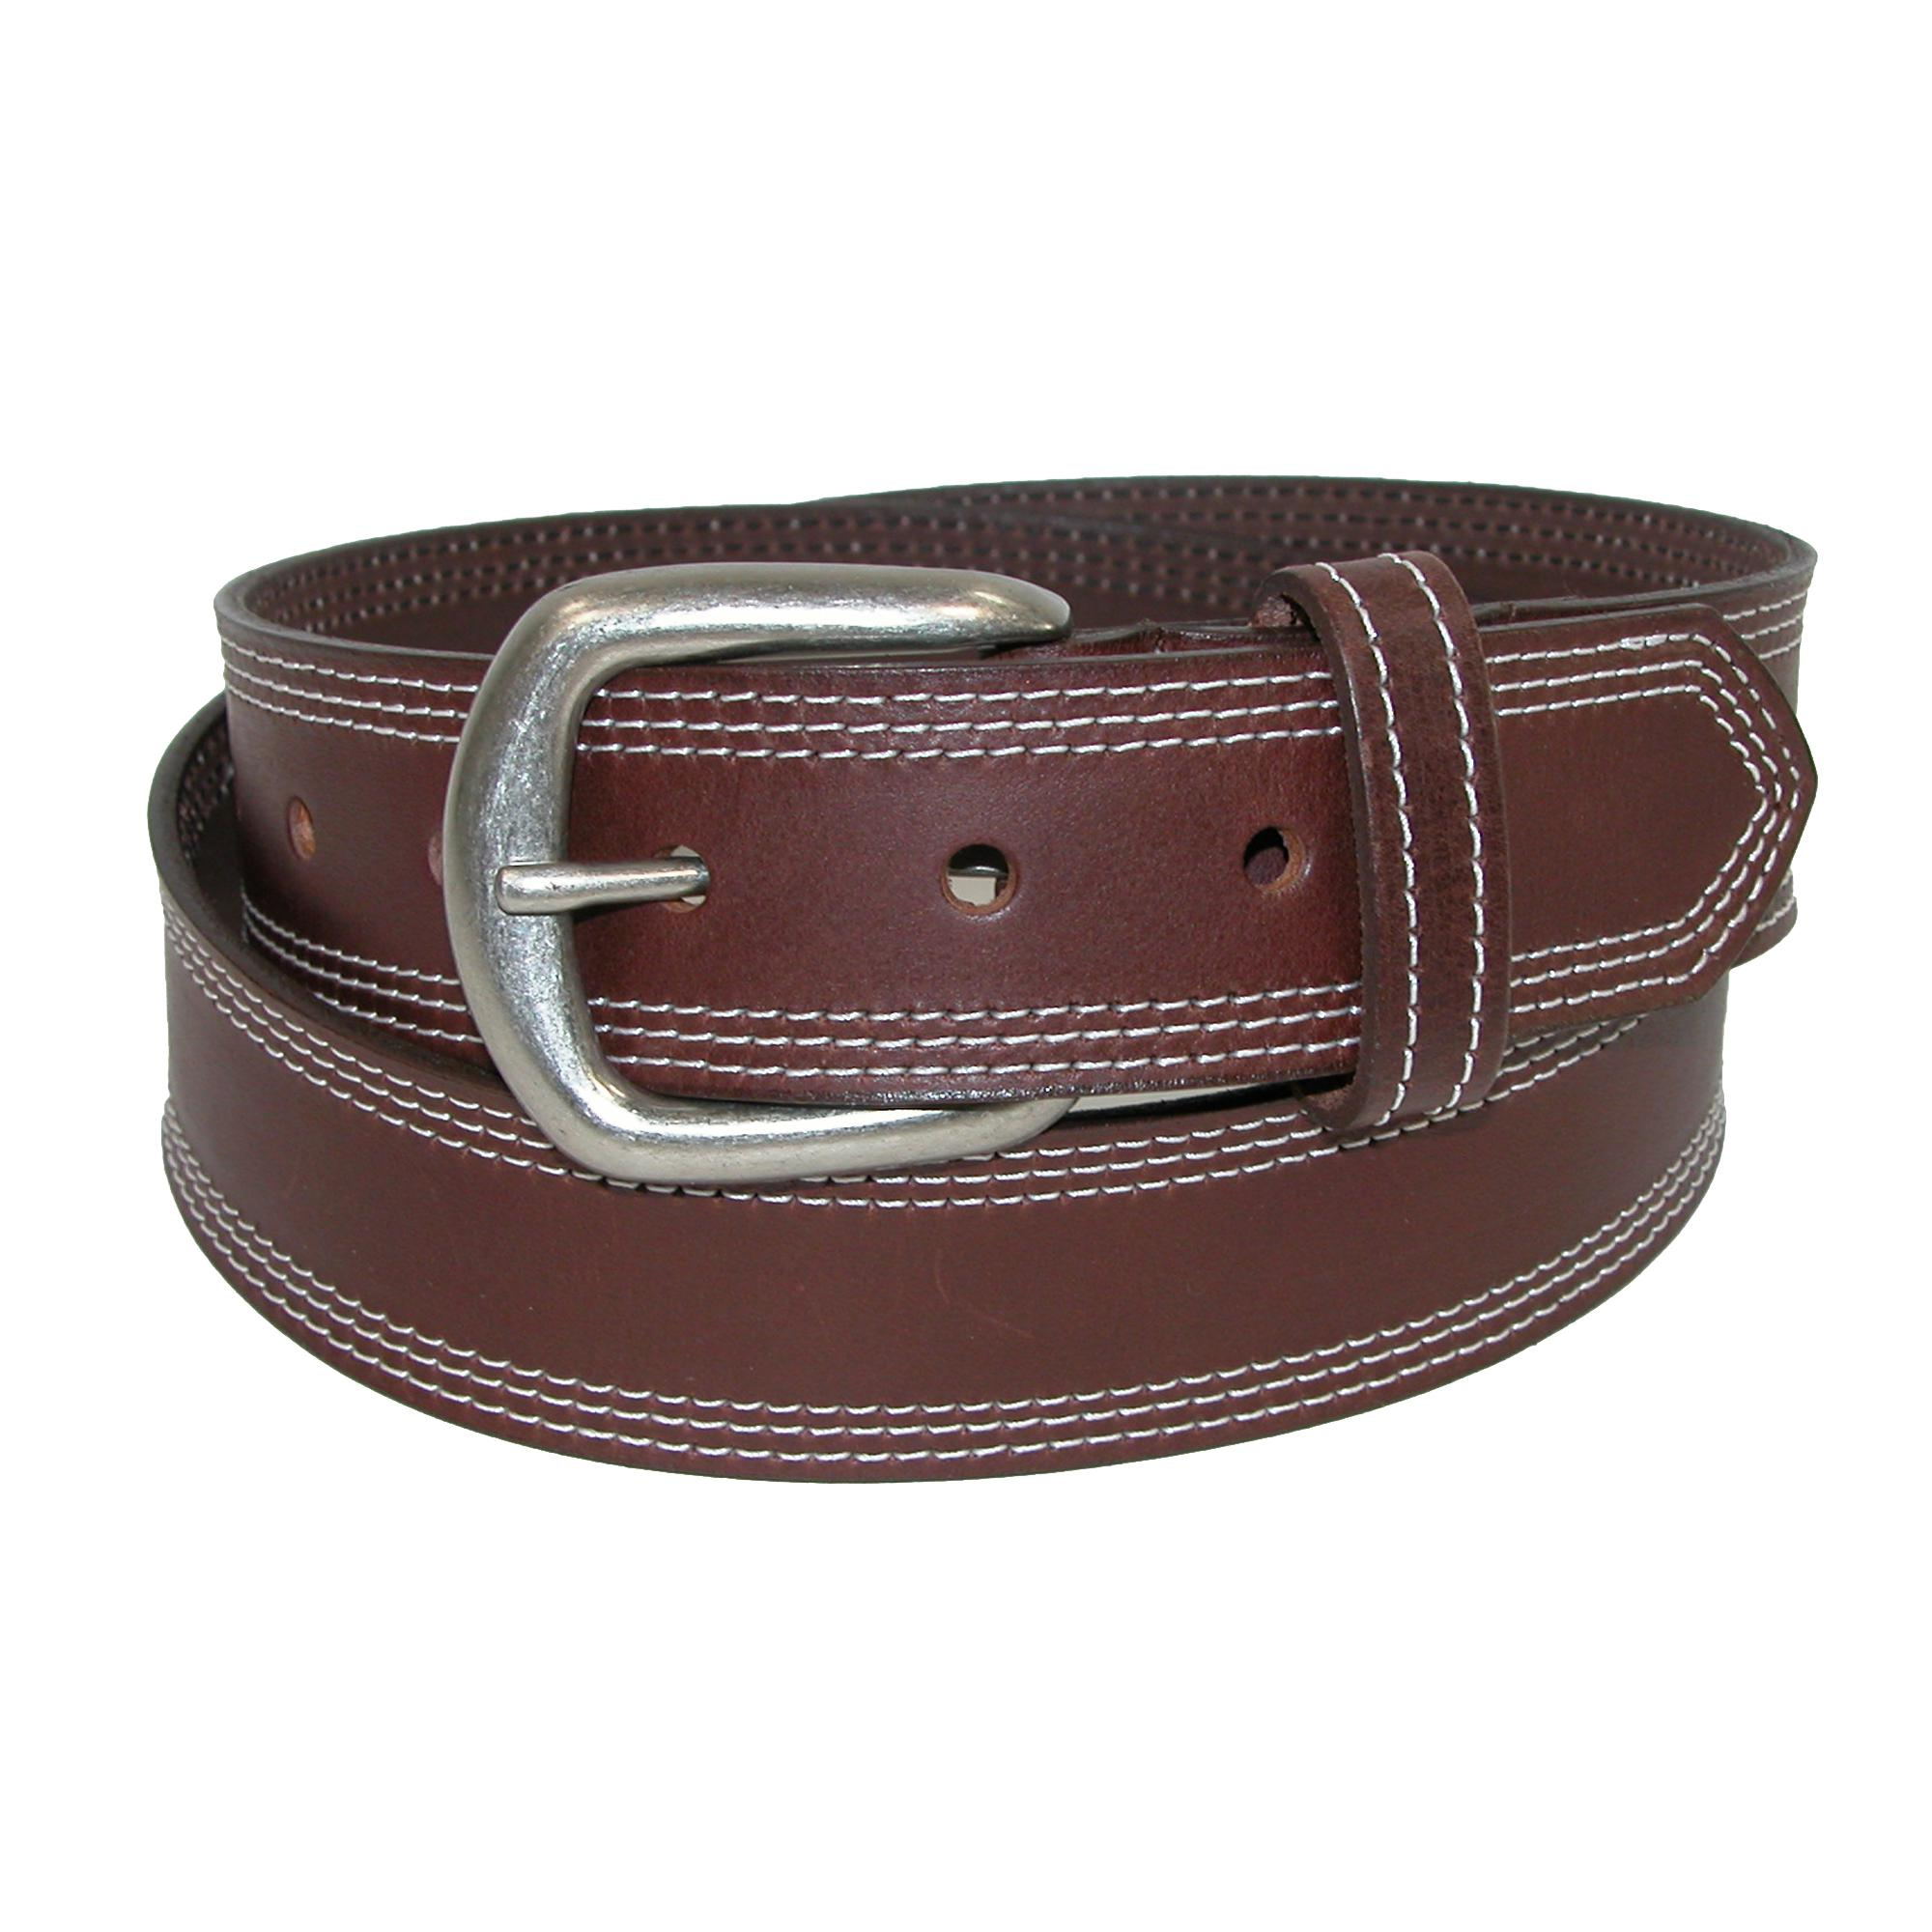 Boston Leather Men's Leather Contrast Triple Stitch Bridle Belt